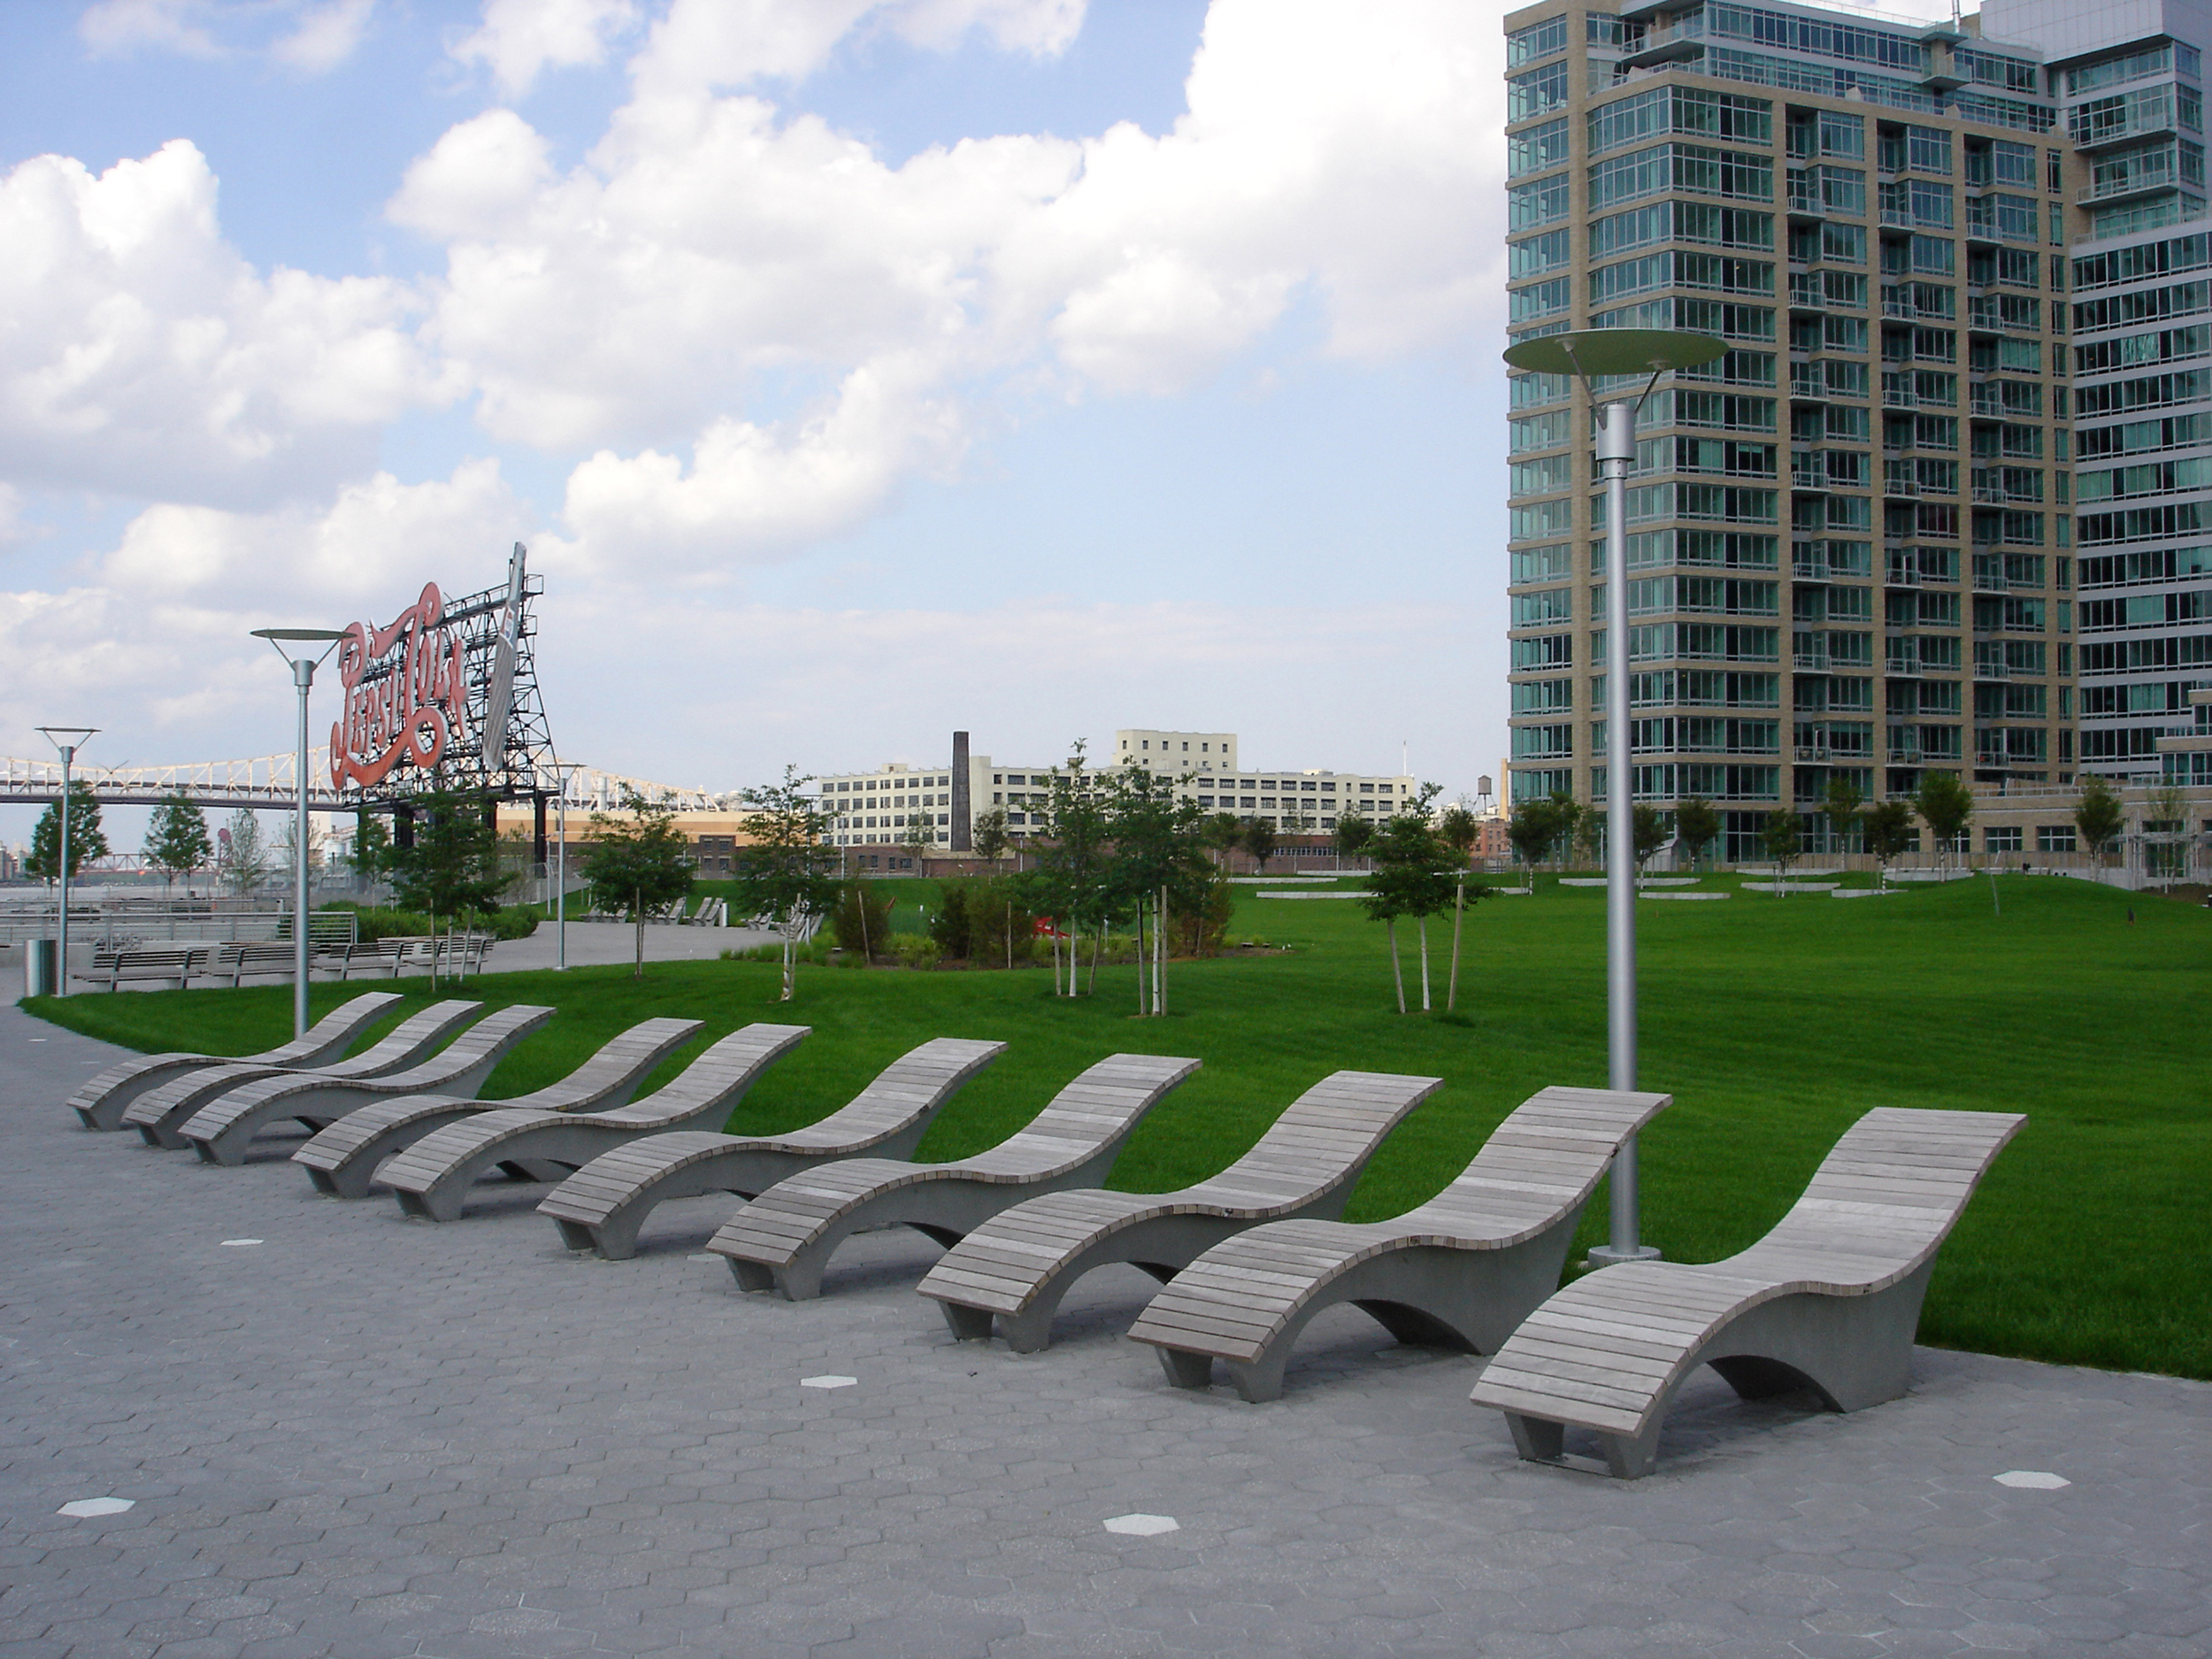 Lounge Area at Gantry Plaza State Park